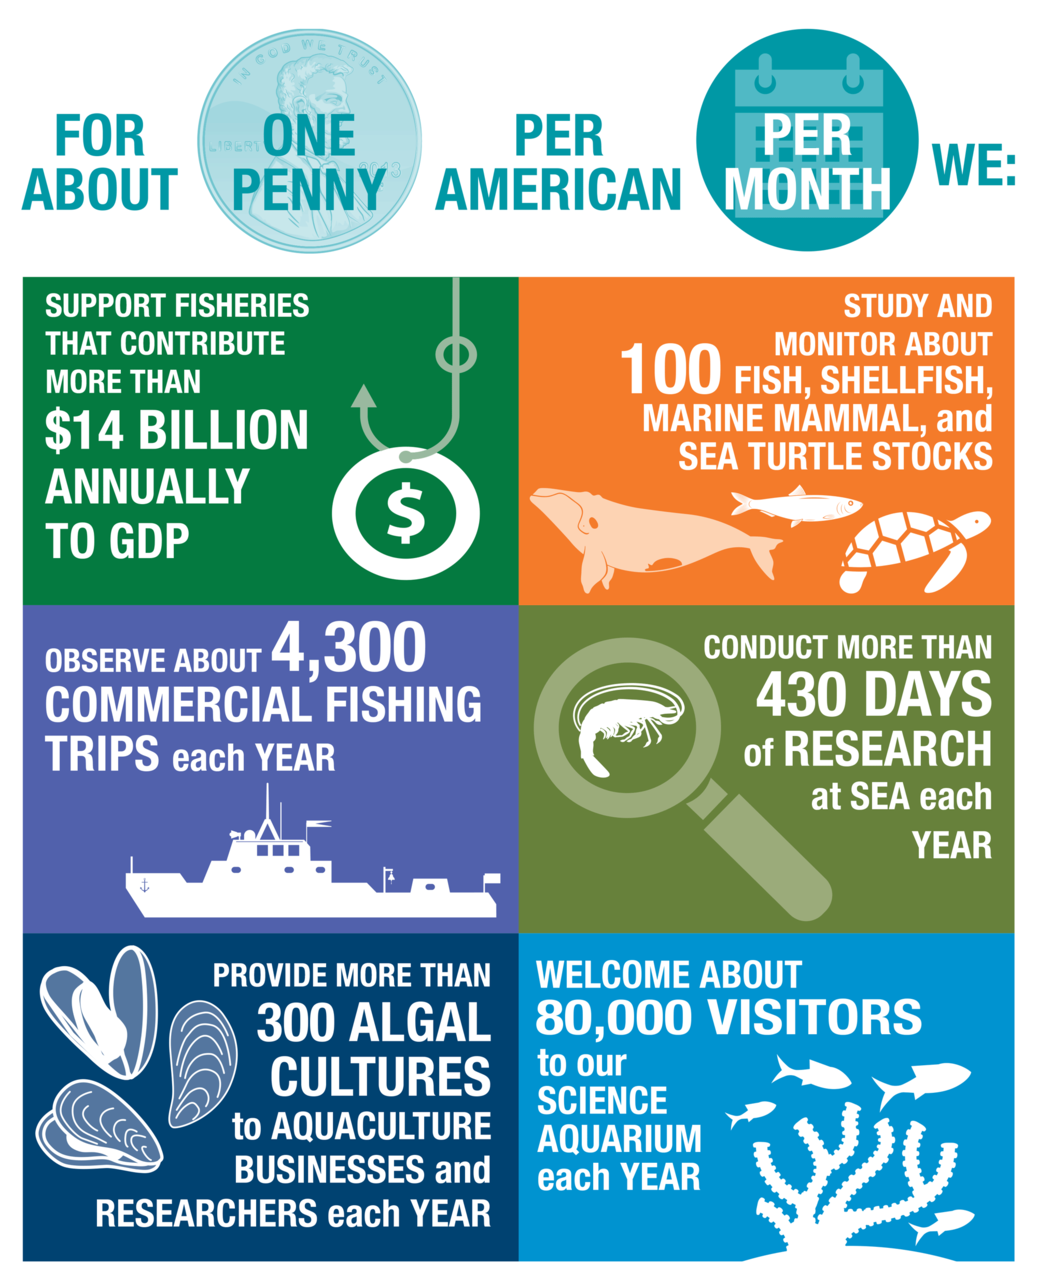 NEFSC 101 Infographic:  For about one penny per American per month, we: Support fisheries that contribute more than $14 billion annually to GDP; Study and monitor about 100 fish, shellfish, marine mammal, and sea turtle stocks; Observe about 4300 commercial fishing trips each year; Conduct more than 430 days of research at sea each year; Provide more than 300 algal cultures to aquaculture businesses and researchers each year; and Welcome about 80,000 Visitors to our science aquarium each year